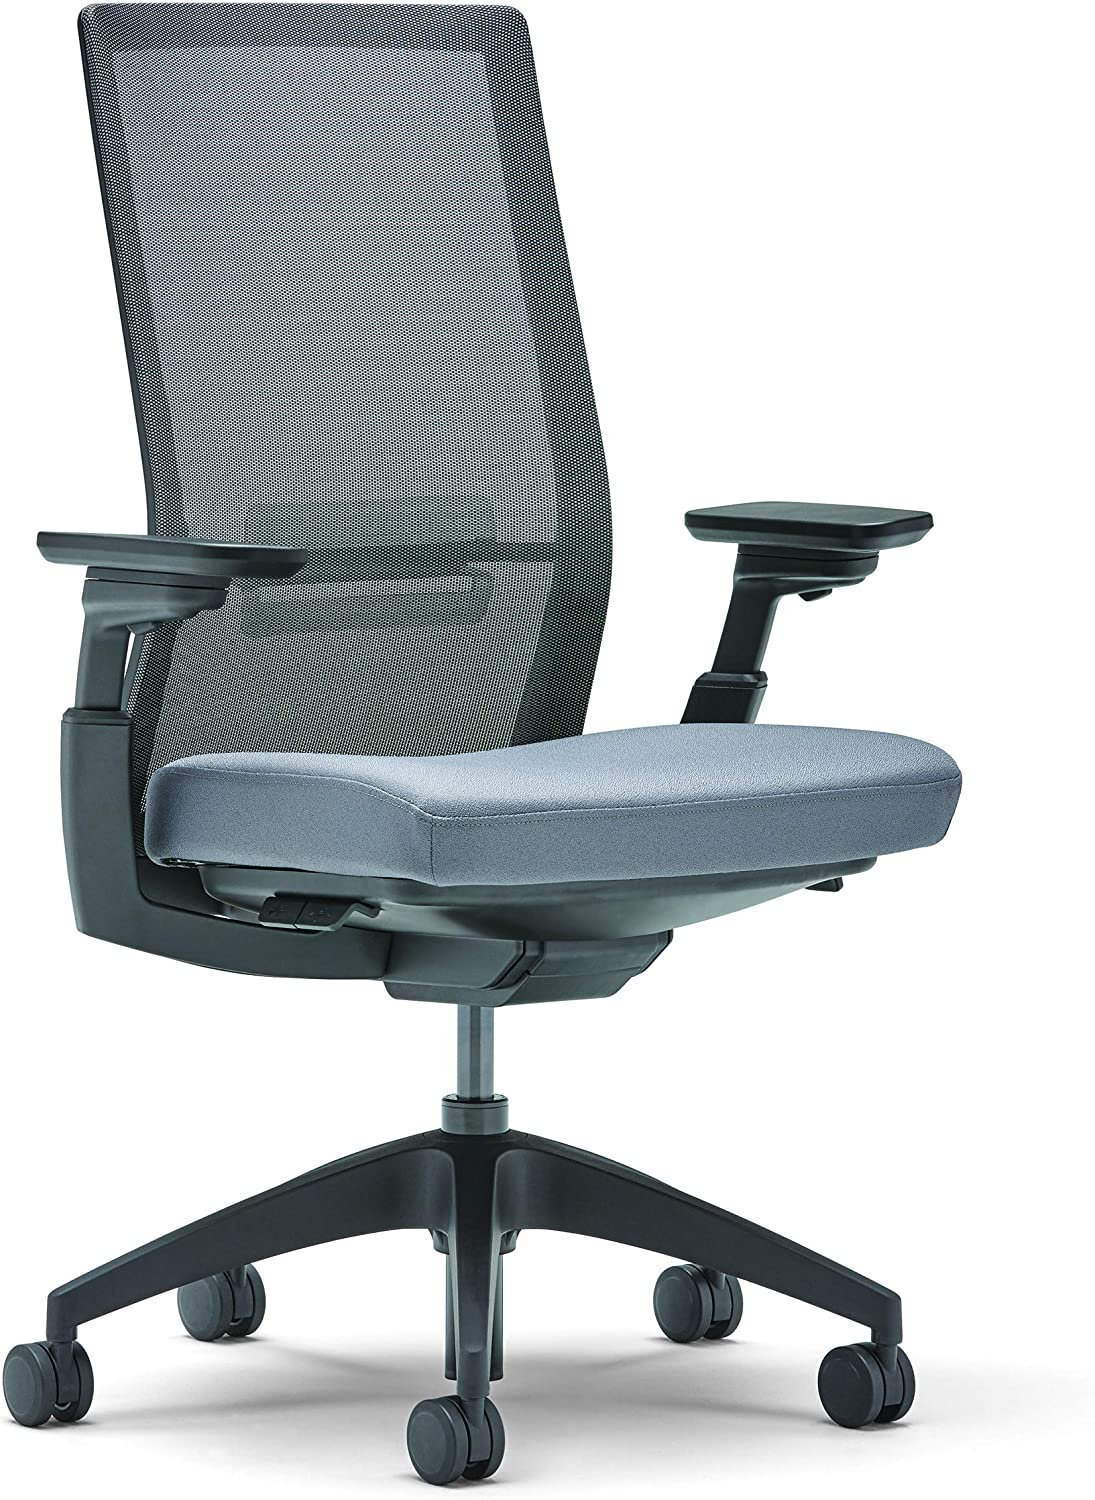 Allsteel Black Evo Task Chair With Lumbar Weight Activated Mesh High Back And 4 D Adjustable Arms Amazon Ca Home Kitchen